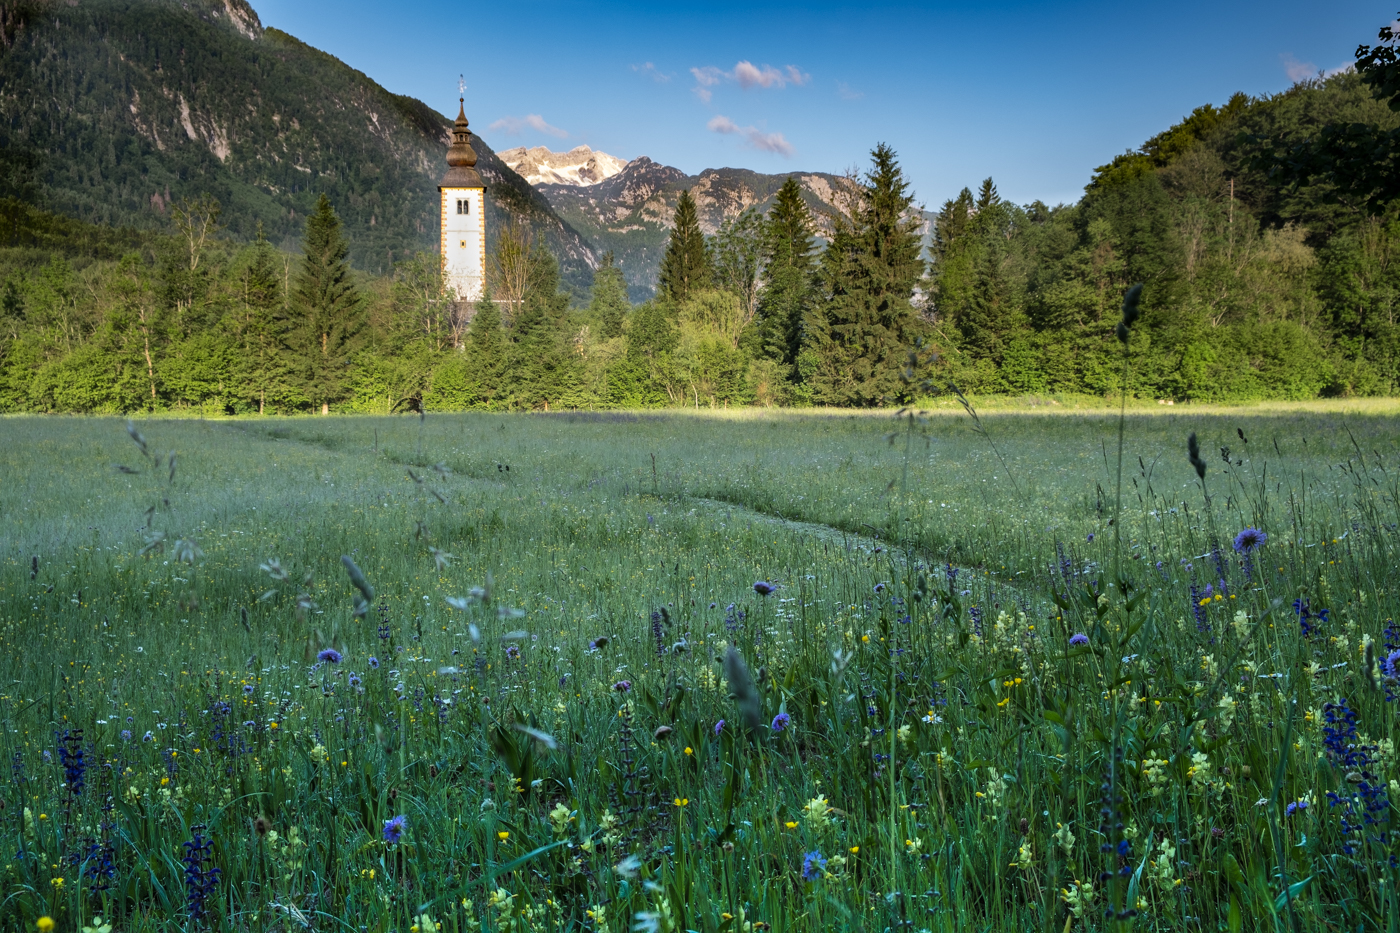 SPRING MEADOW IN SLOVENIA by Chris Reynolds